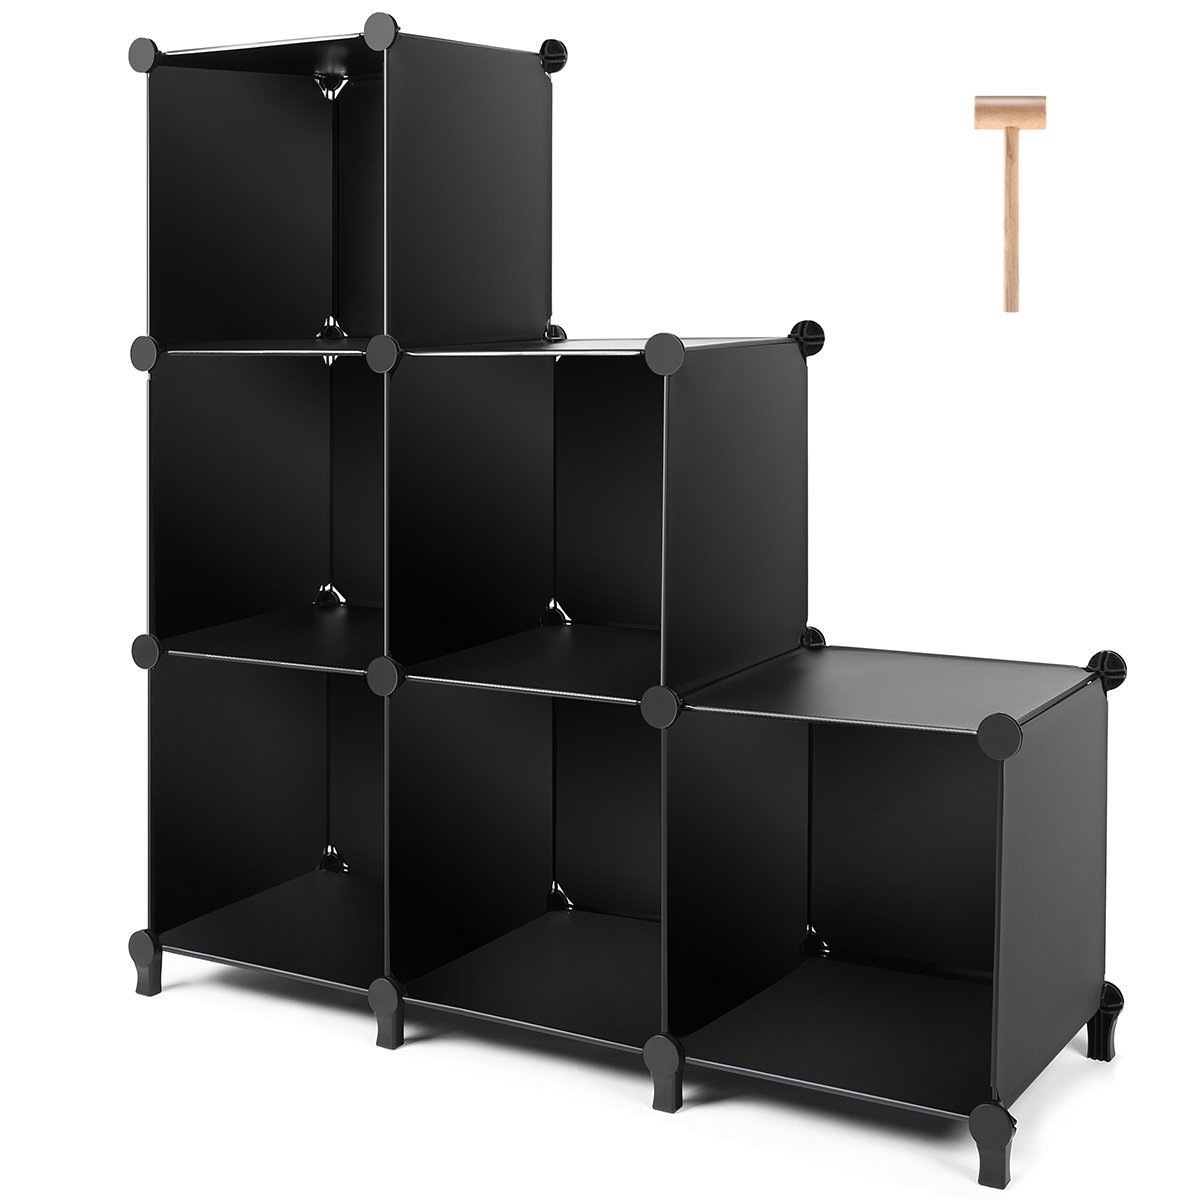 TomCare Cube Storage 6-Cube Closet Organizer Storage Shelves Cubes Organizer DIY Plastic Closet Cabinet Modular Book Shelf Organizing Storage Shelving for Bedroom Living Room Office, Black by TomCare